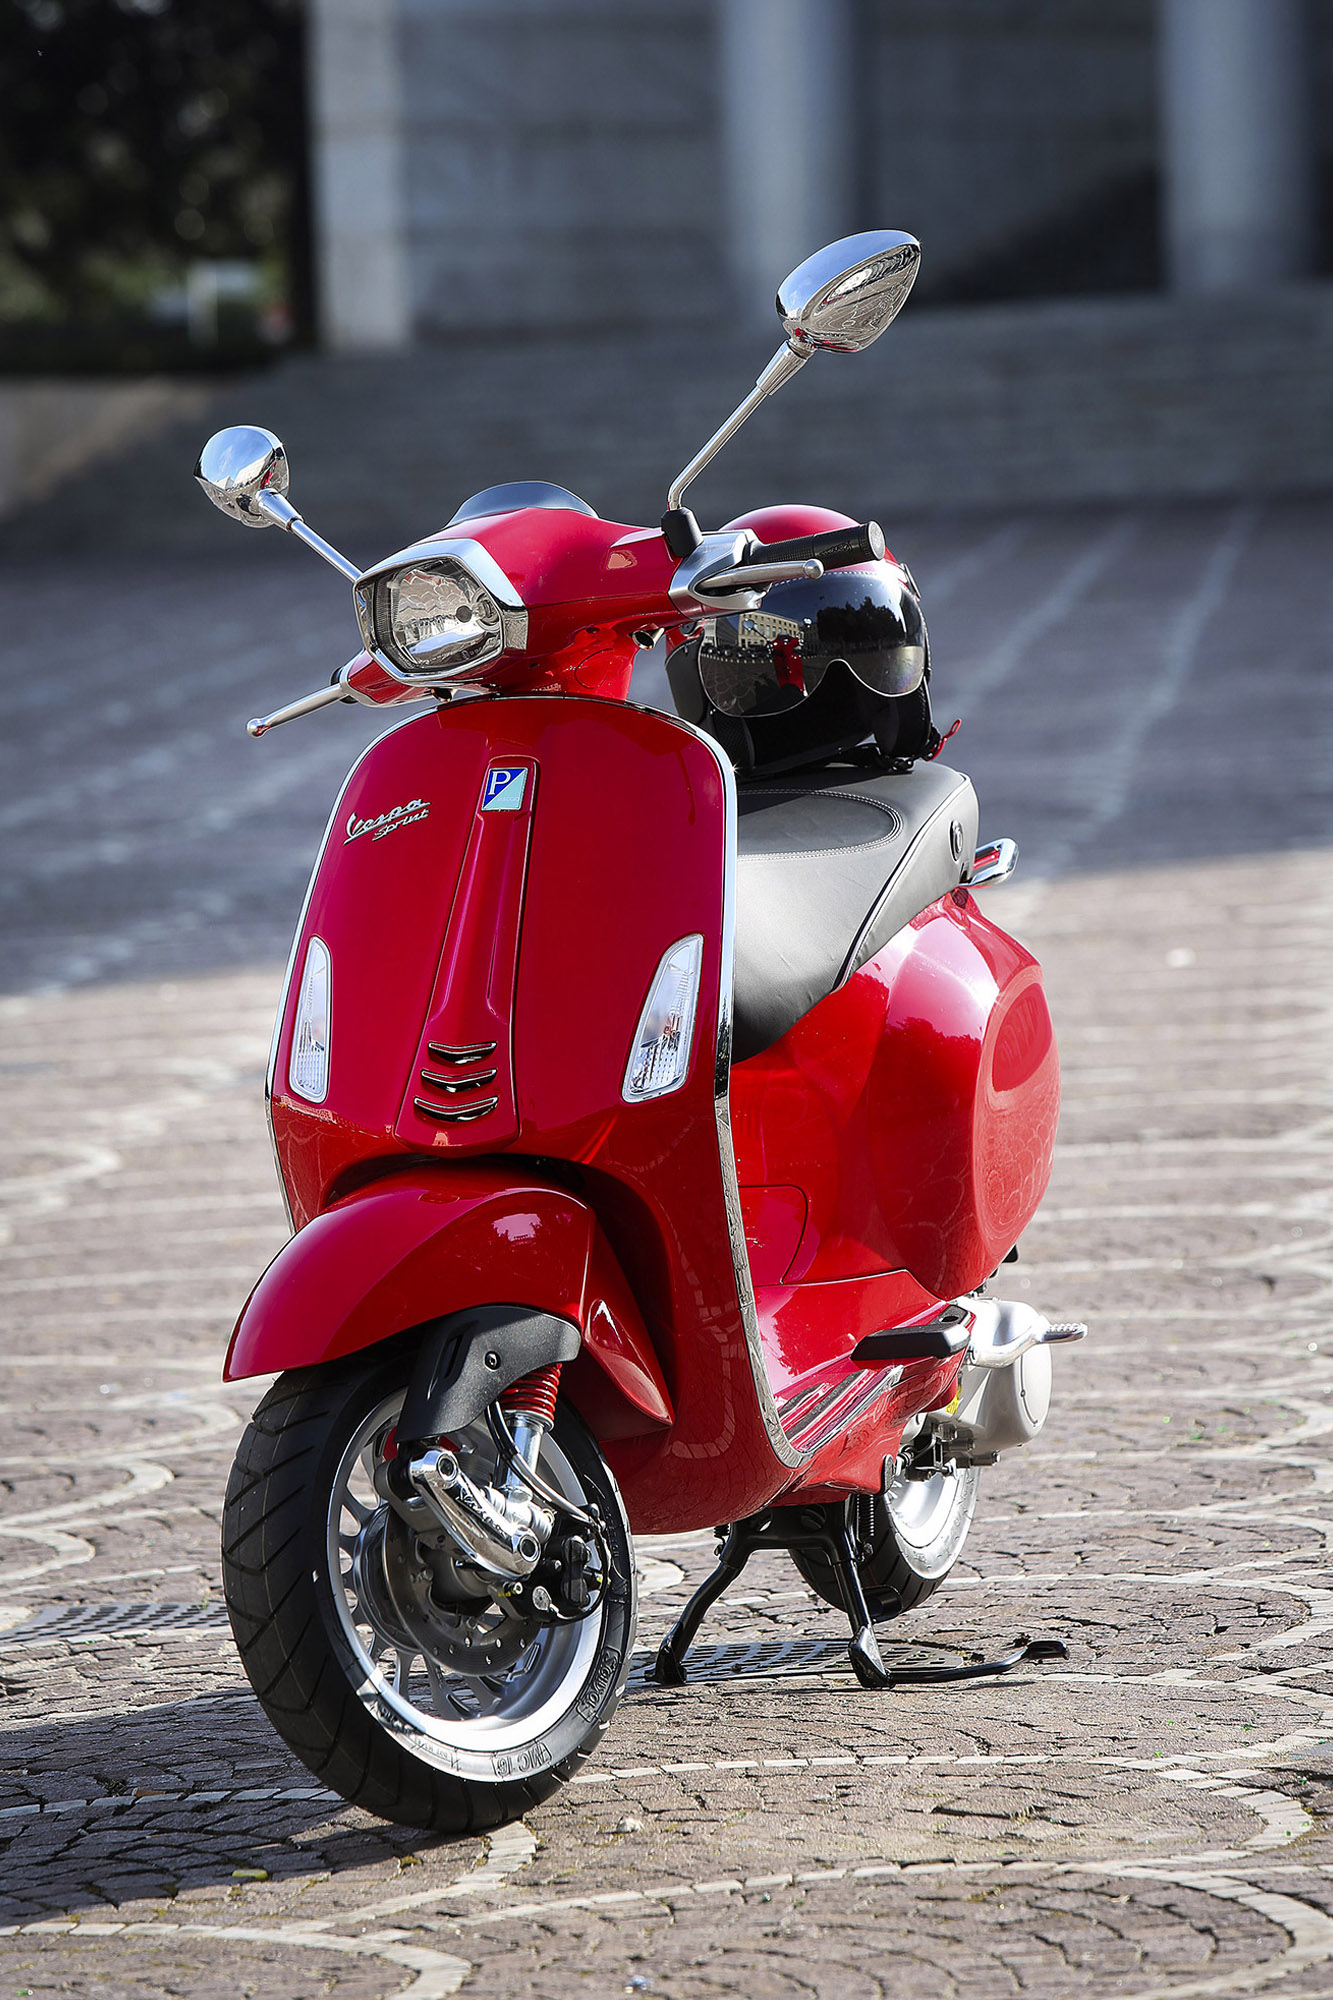 Vespa Wallpapers Vehicles Hq Vespa Pictures 4k Wallpapers 2019